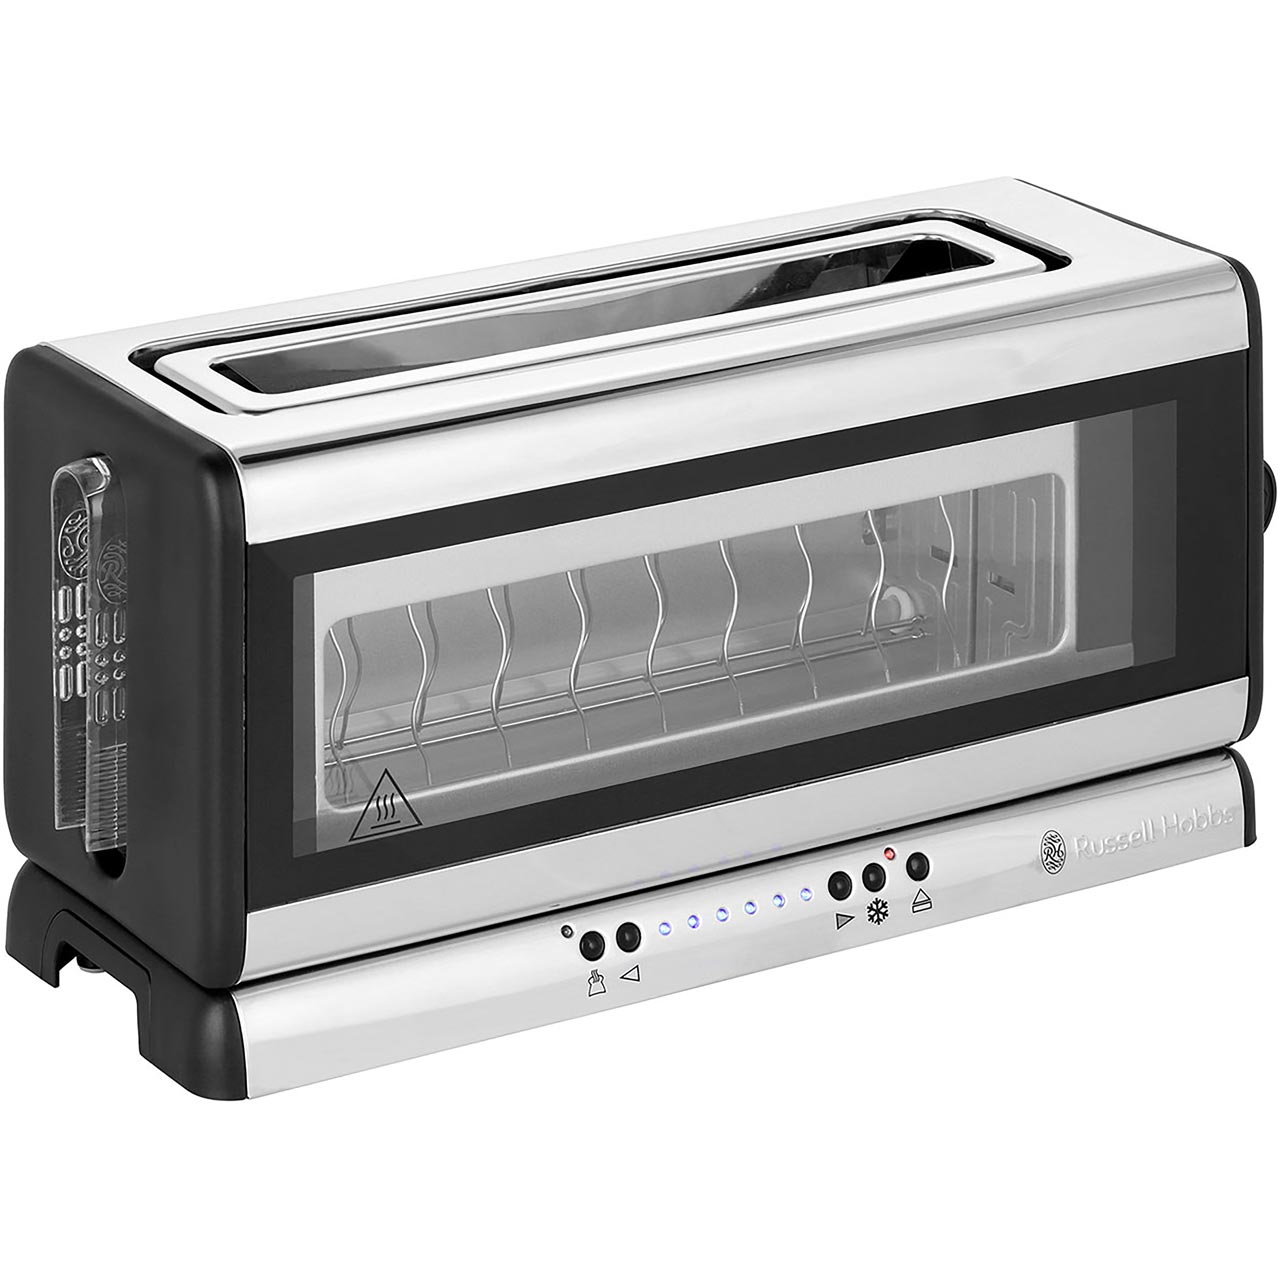 long slot toasters reviews hotpoint long slot digital toaster tt12euk review good oster 4. Black Bedroom Furniture Sets. Home Design Ideas